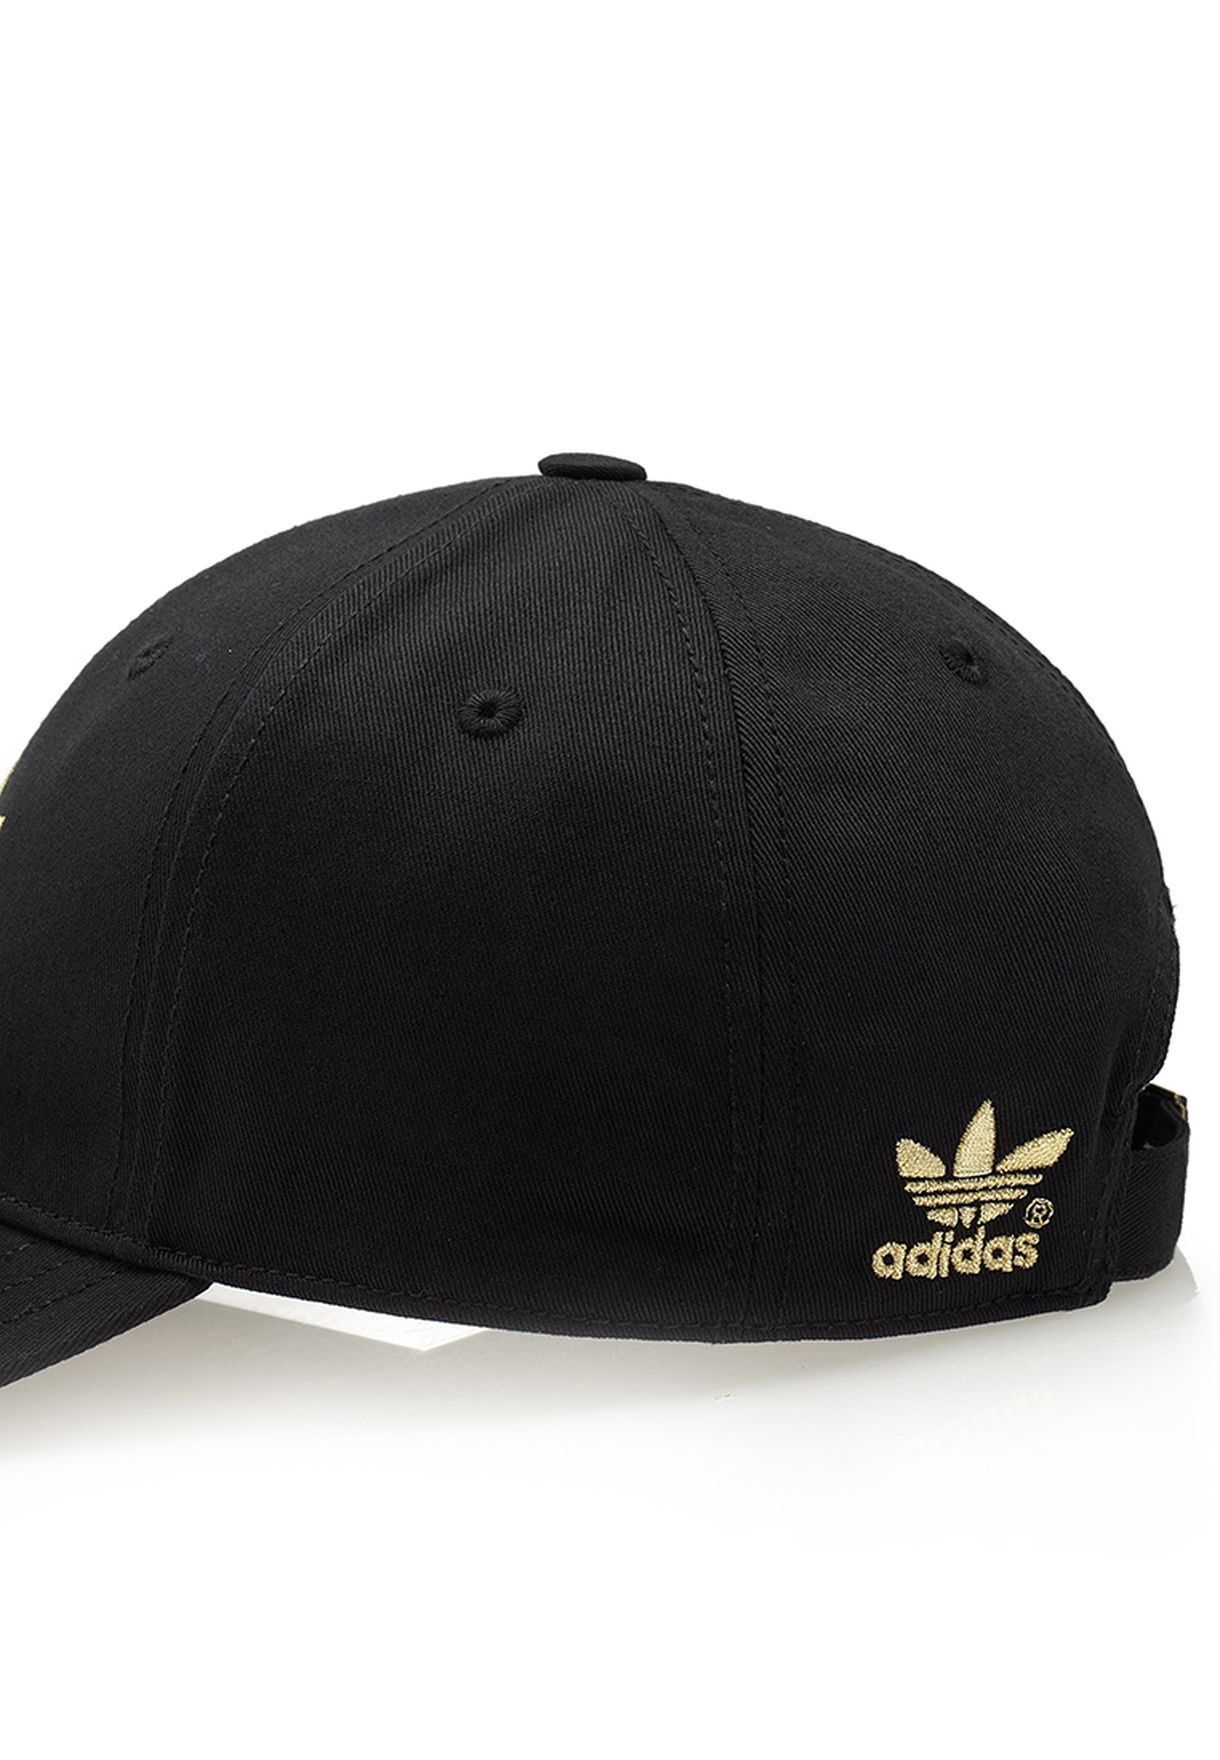 f3f023e2efd Shop adidas Originals black AC Classic Cap G84831 for Men in Saudi ...